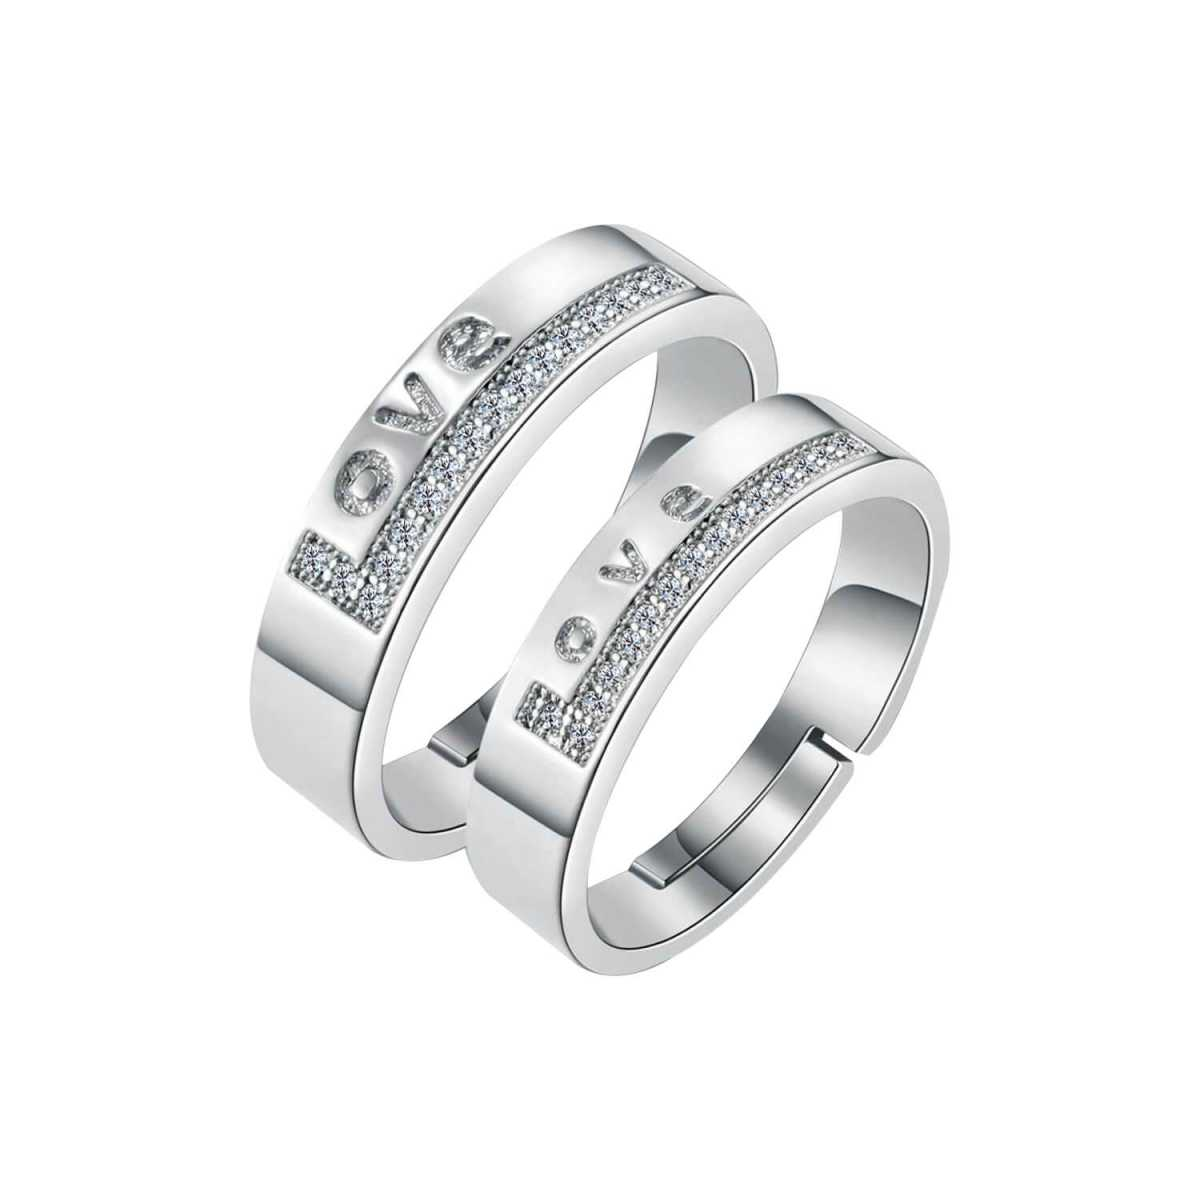 SILVERSHINE,silver plated ring symbol of love decorated of diamond adjustable couple ring for men and women.